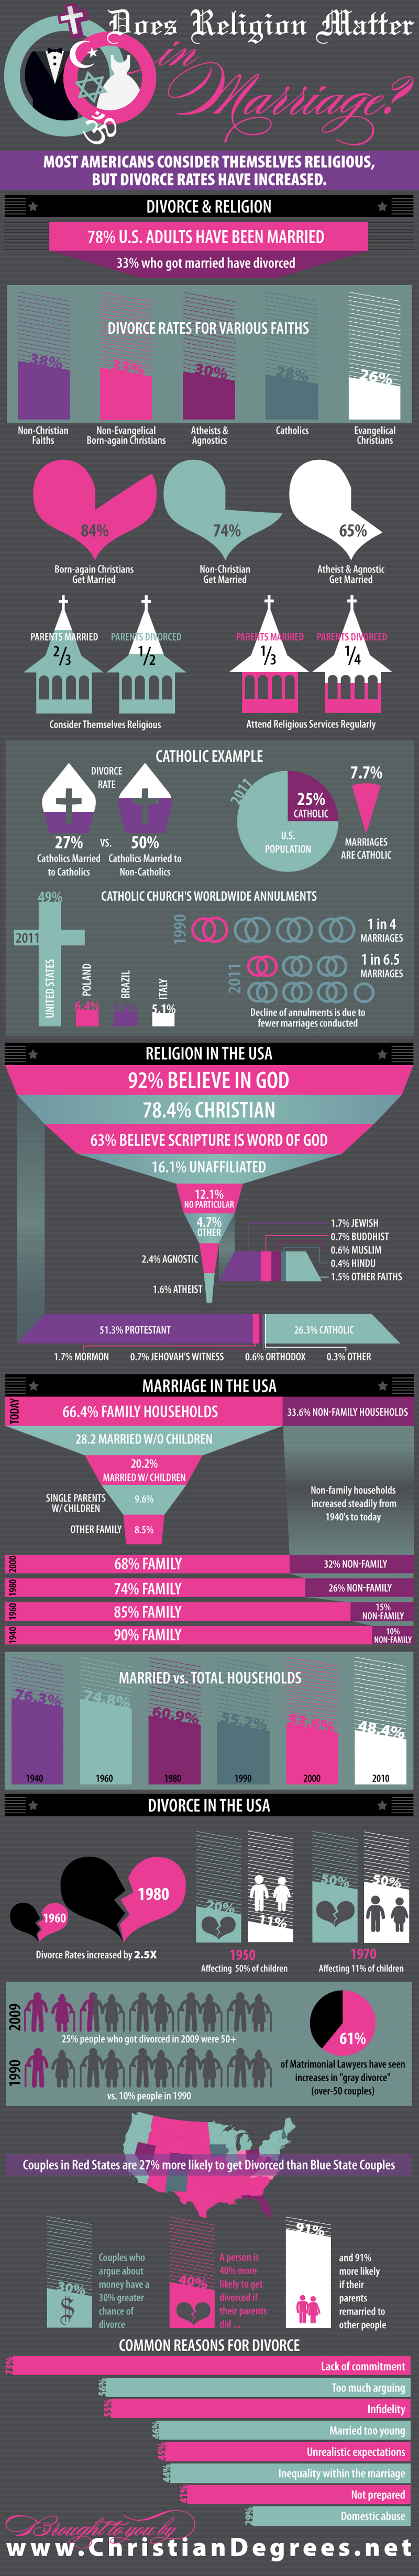 Religions Impact on Marriage